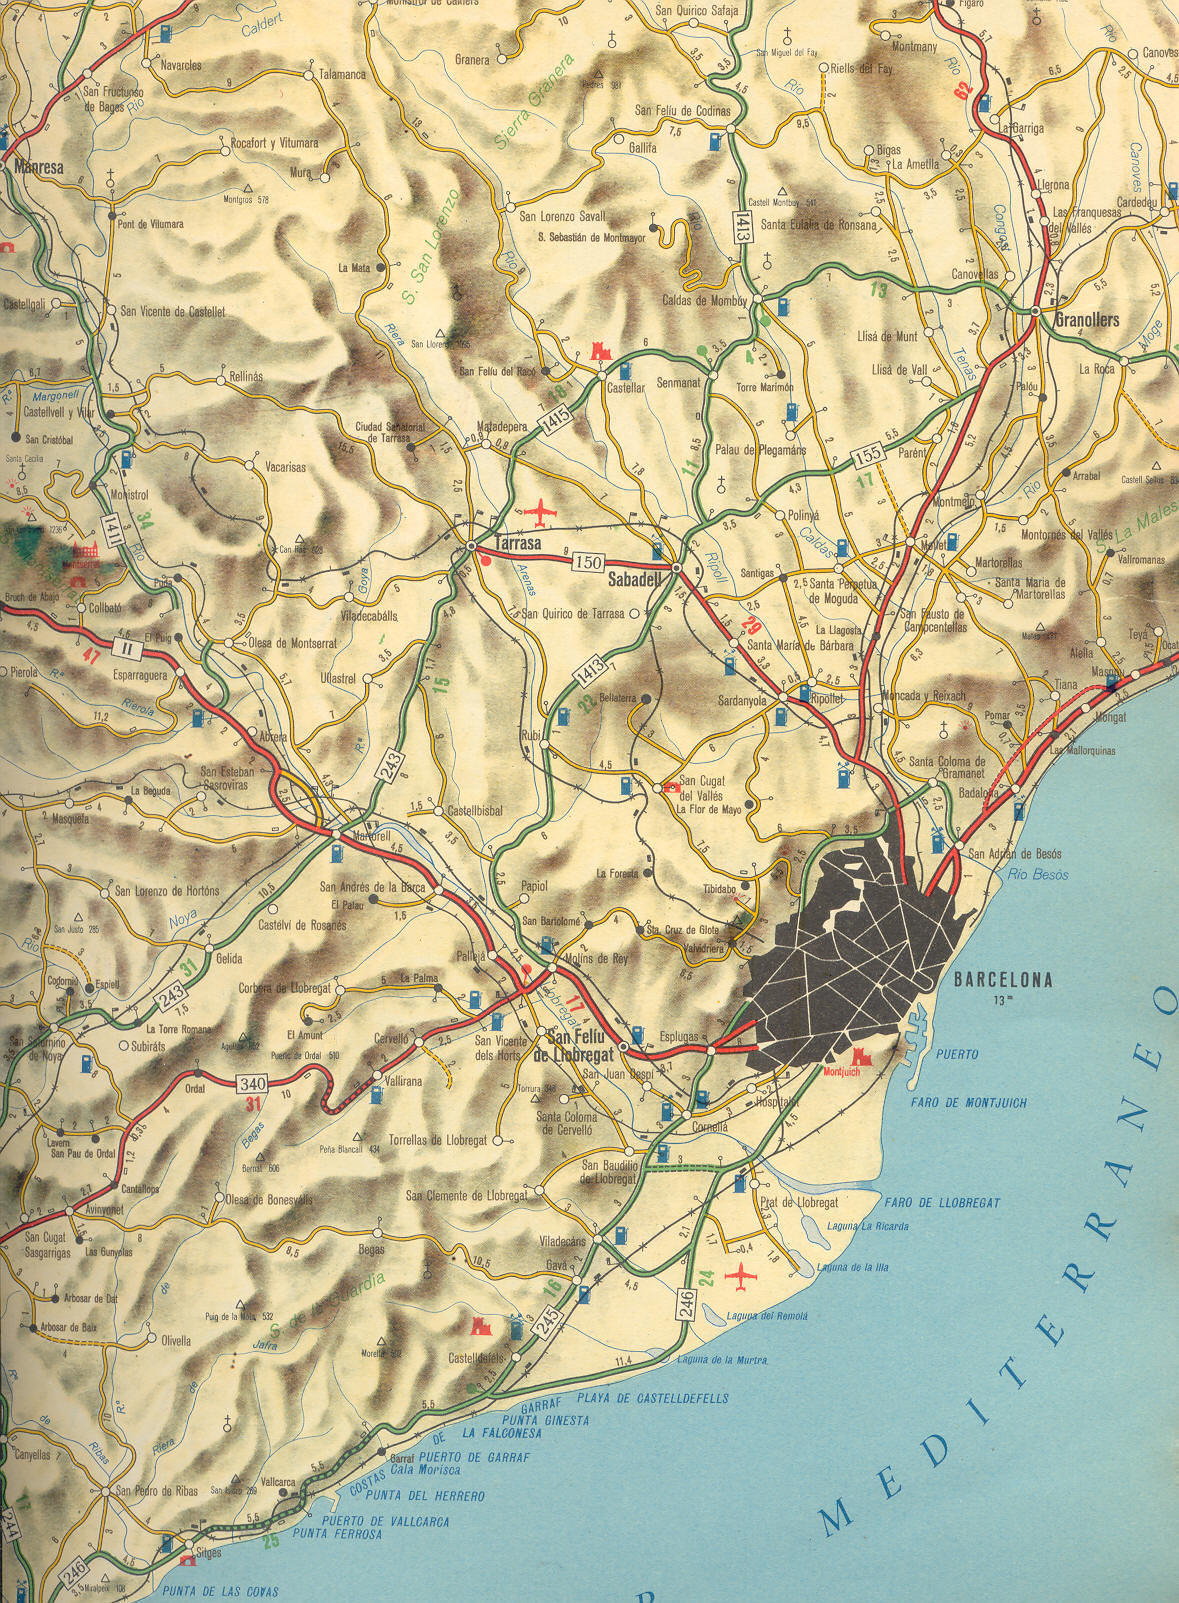 The area of Barcelona in 1959